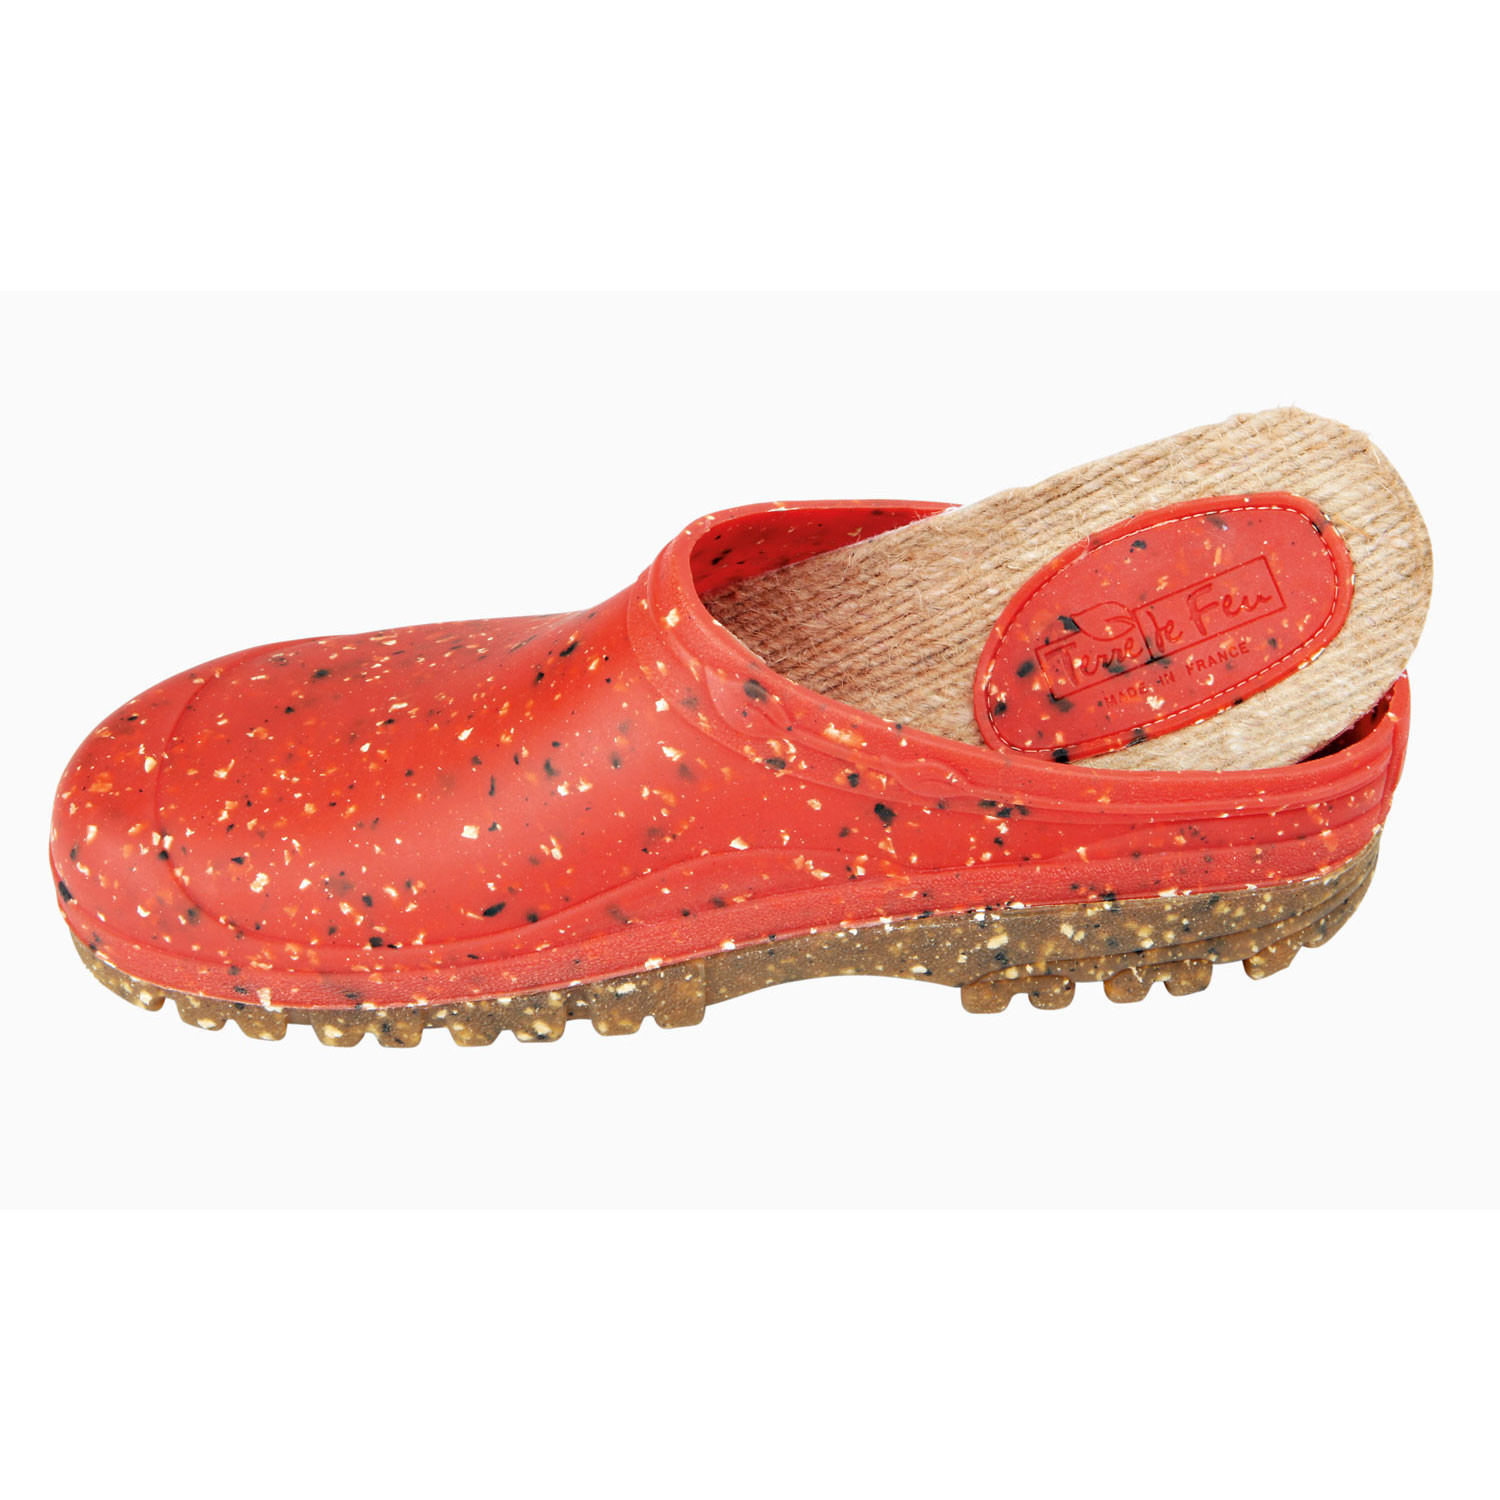 Gartenclogs, tomate